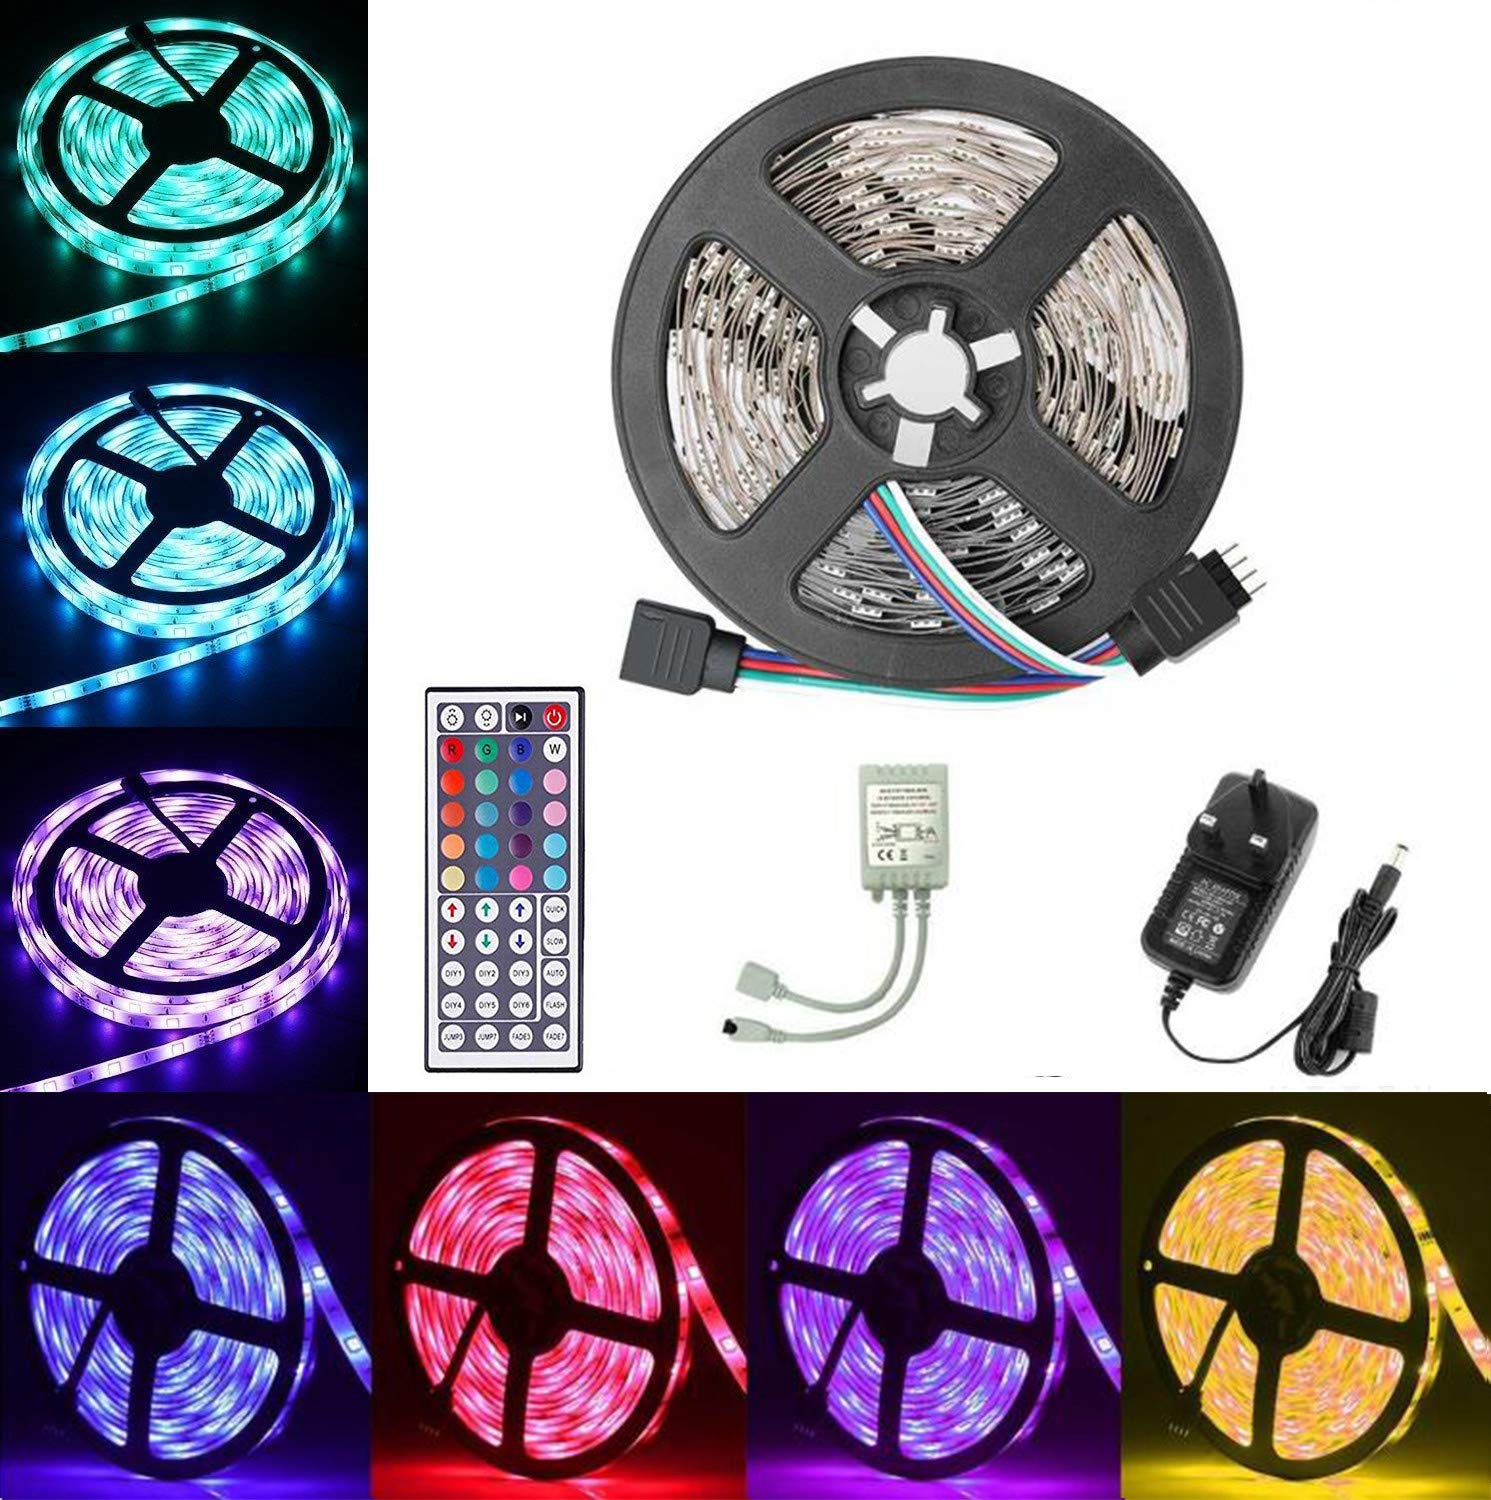 Emwel Sound Activated Mini USB Car Disco Dj Lights Strobe Light Mirror Magic Rotating Ball Glitter Stage Show Lights for Camp Home Party Wedding Christmas Bar Club Pub with Remote